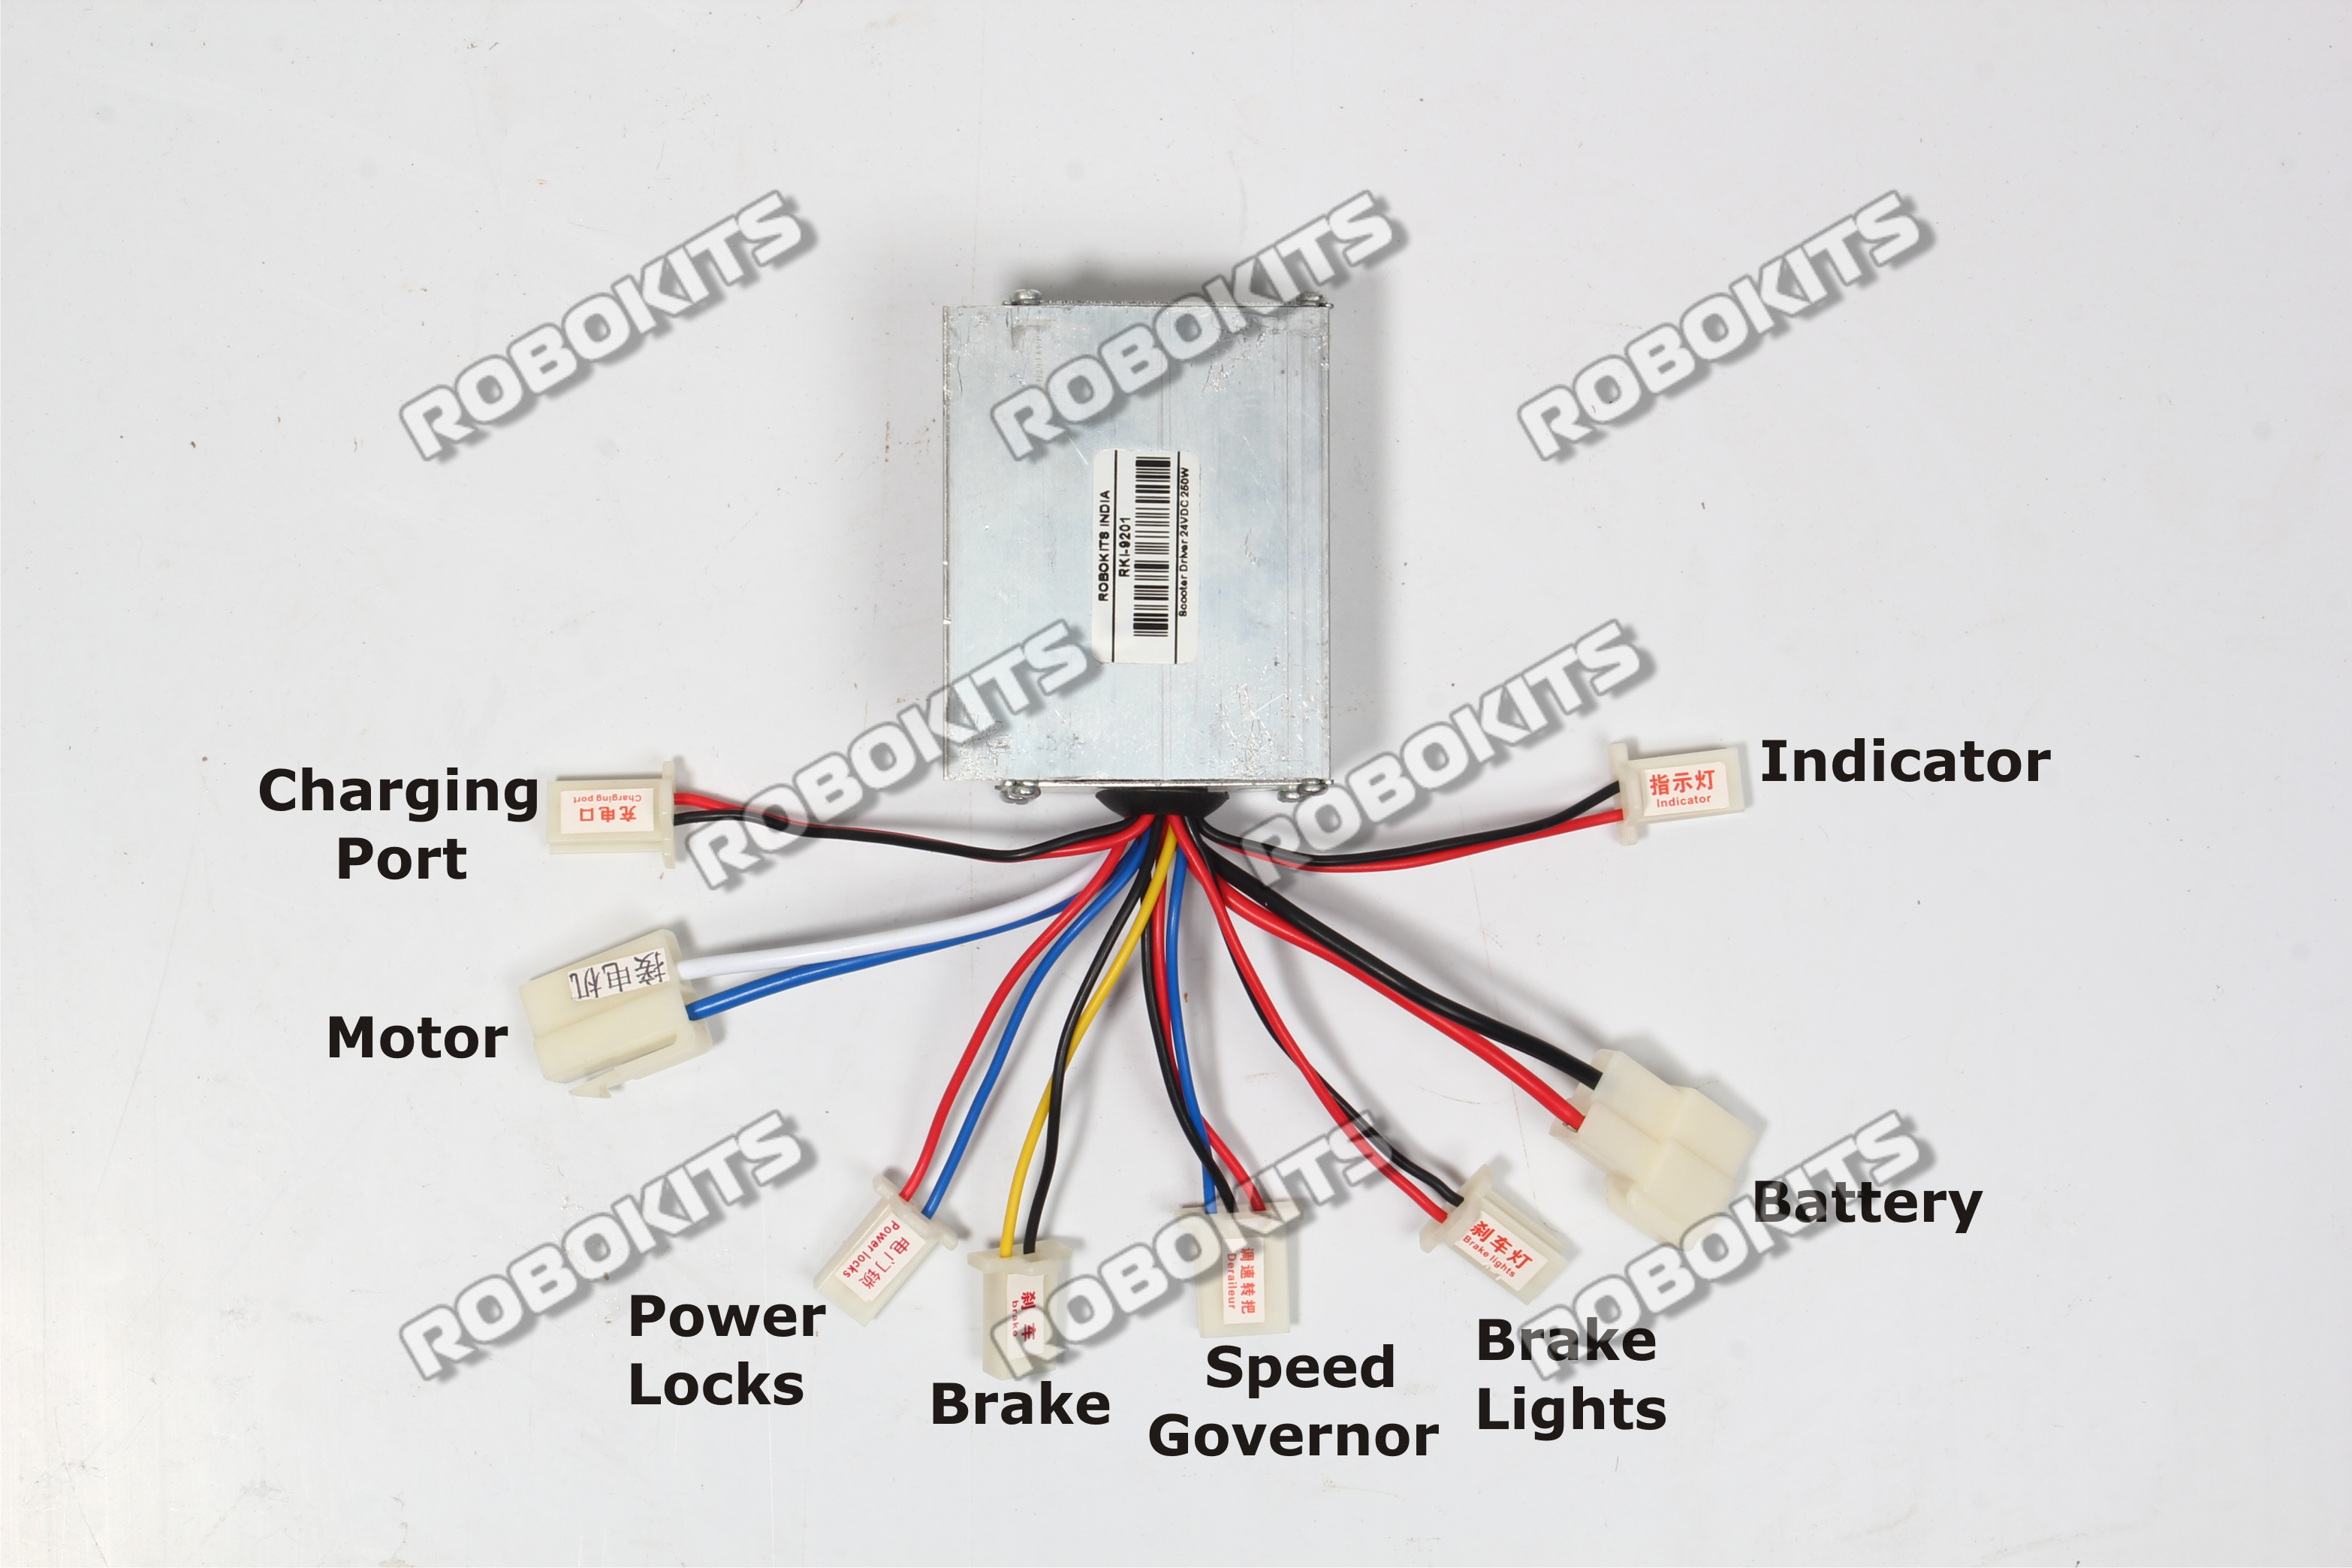 E Bike Motor Electric Speed Controller 24v 250w Rki 9201 Rs700 Circuit That Can Be Used For Varying The Downloads Media Model